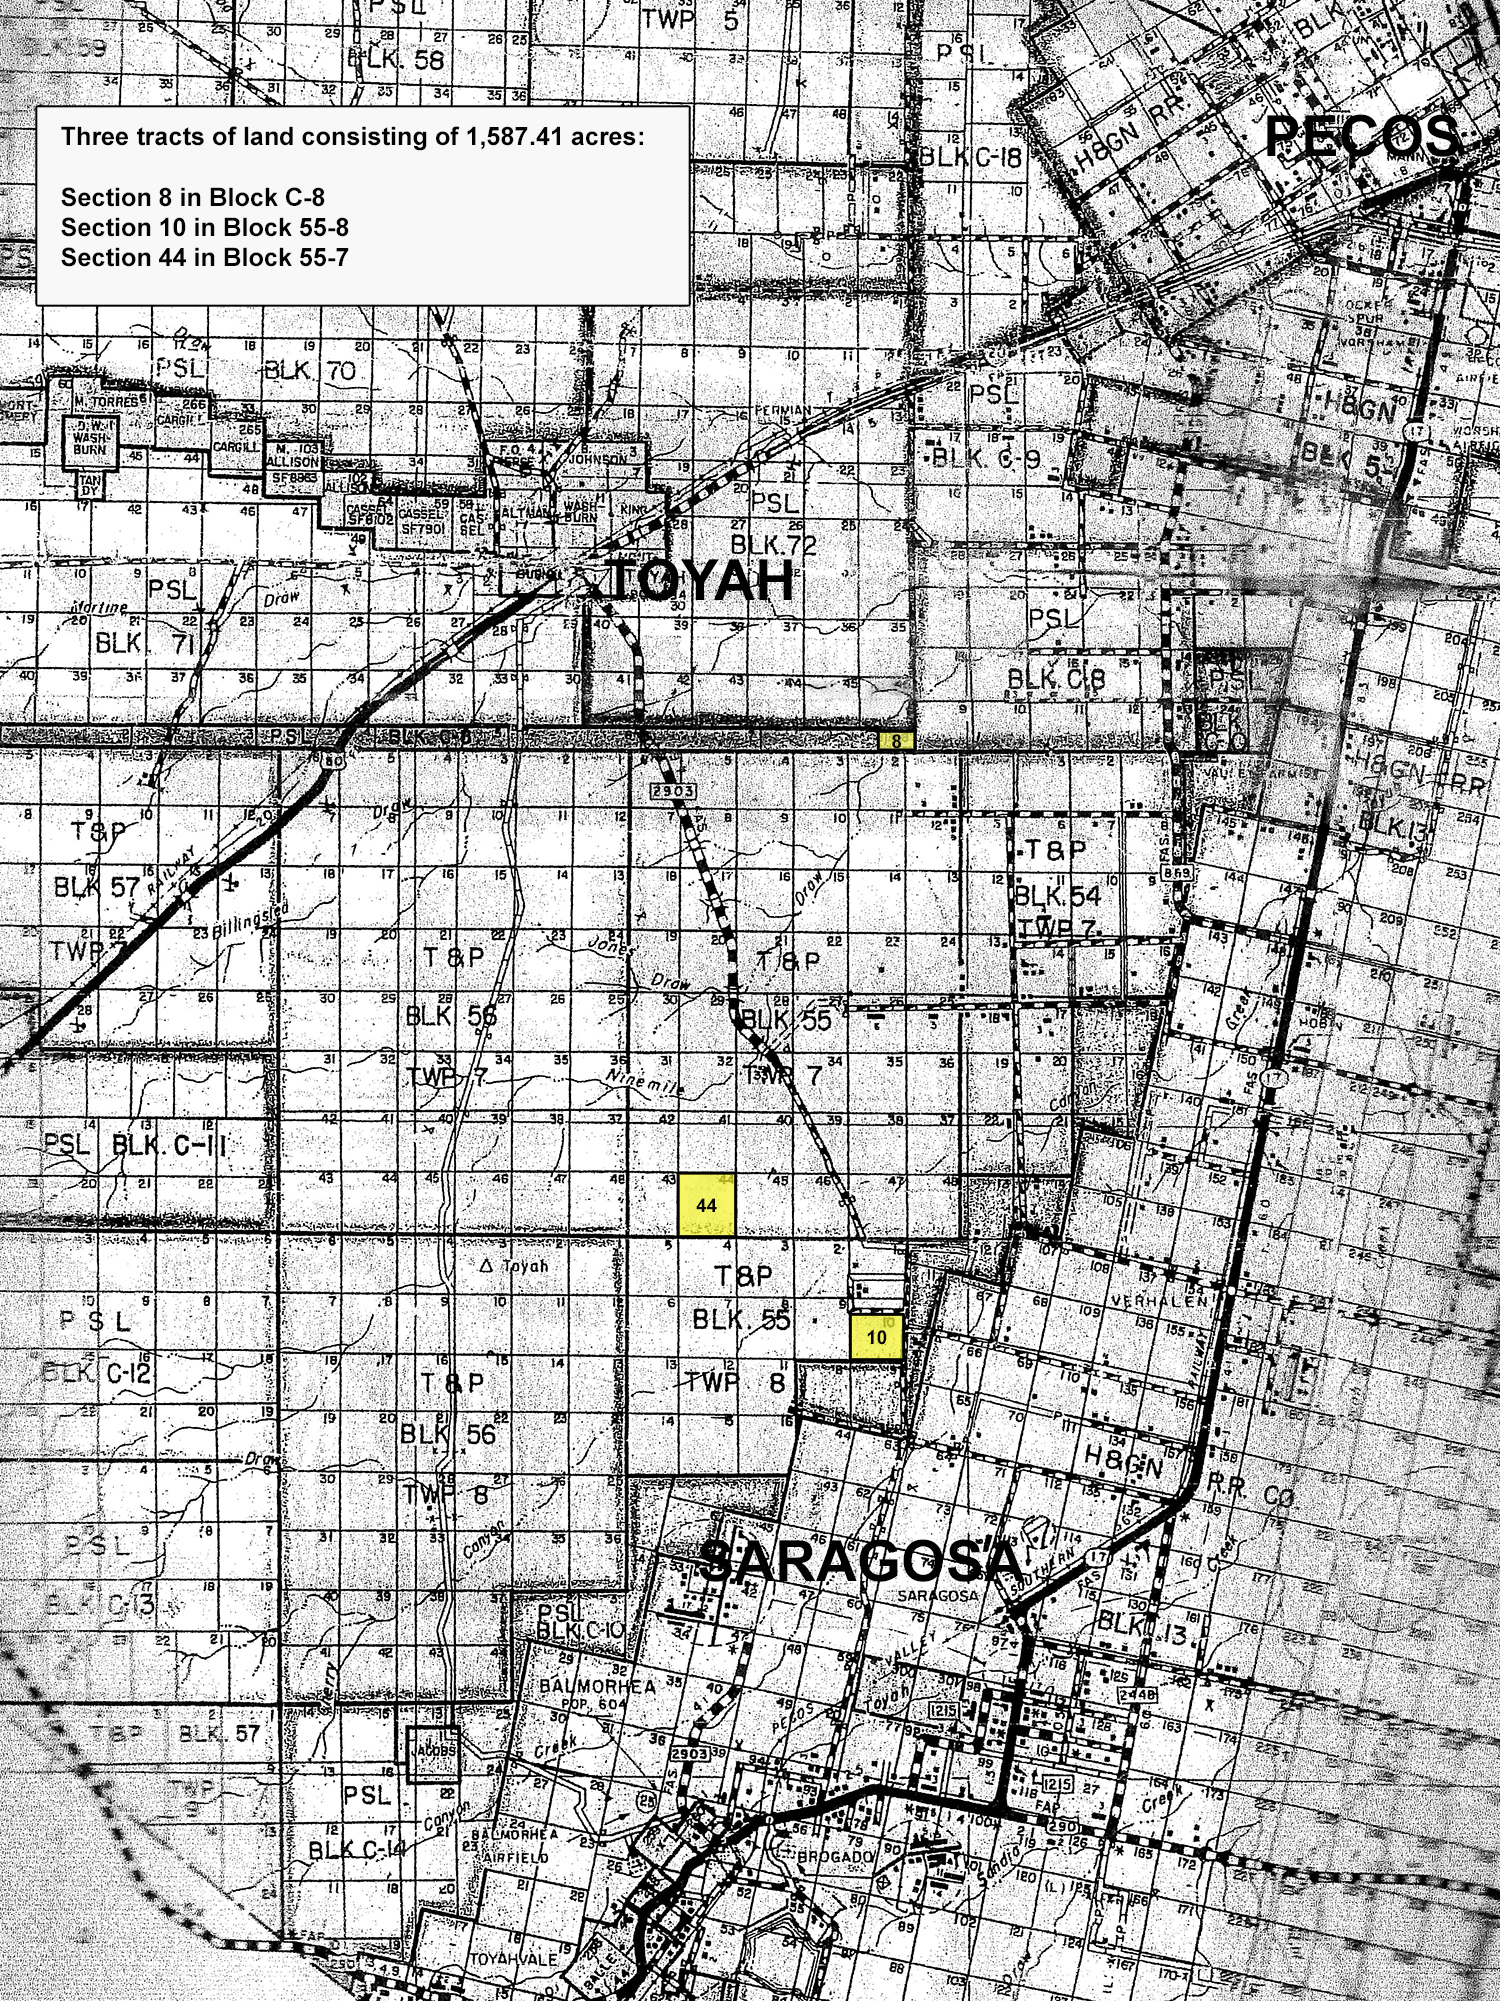 2% Undivided Interest In 3 Tracts | University Of Texas System - Reeves County Texas Plat Maps